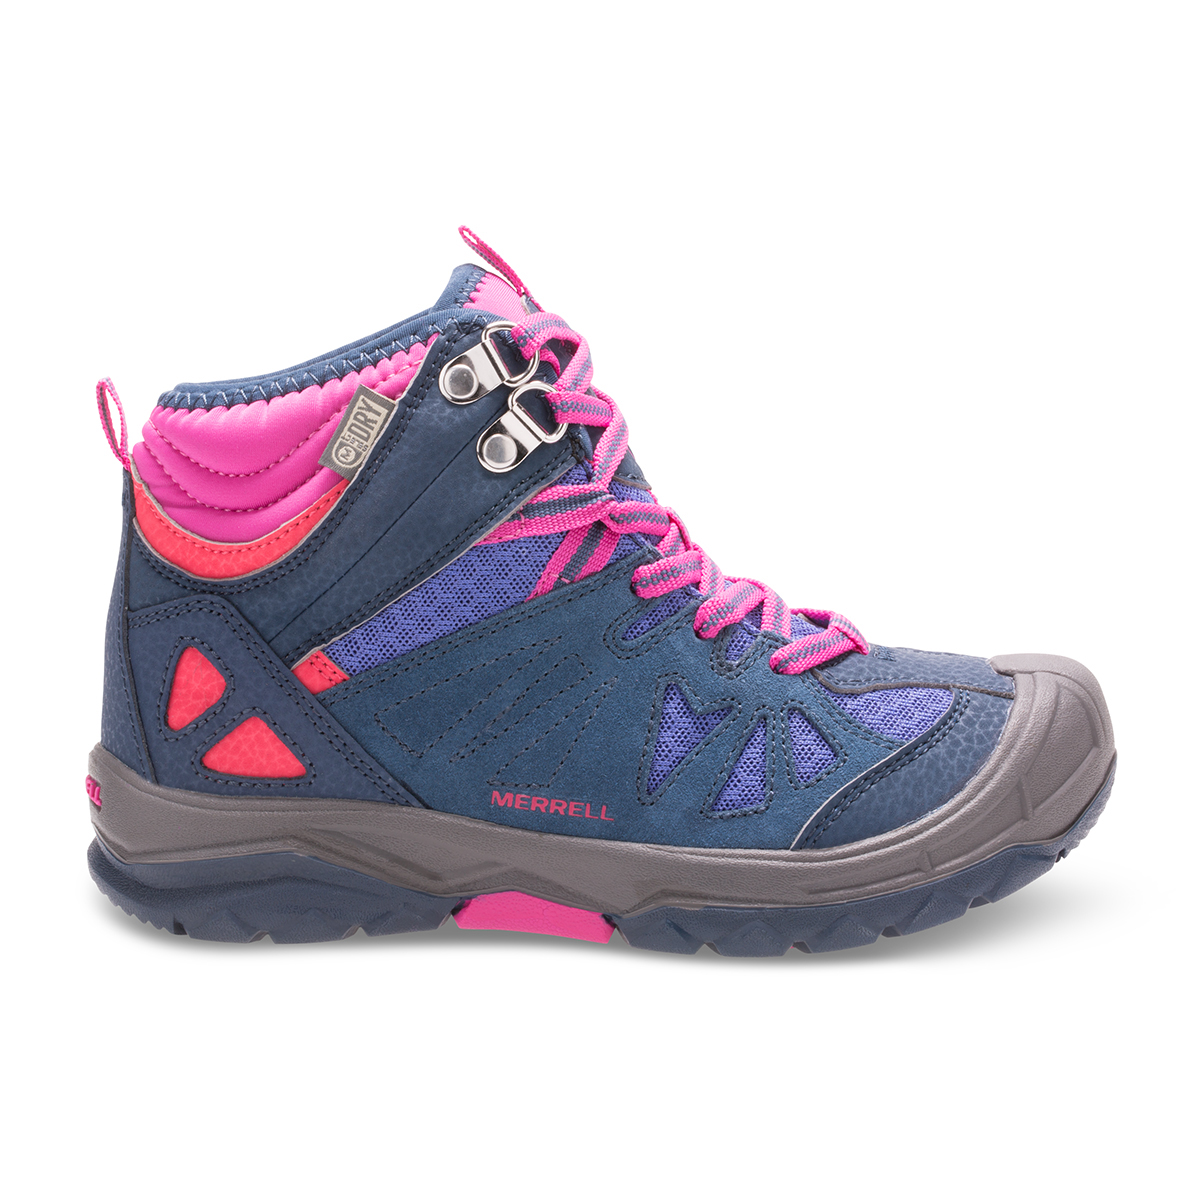 567a8f9f5b2 Merrell Capra Mid Waterproof Shoes - Children to Youths